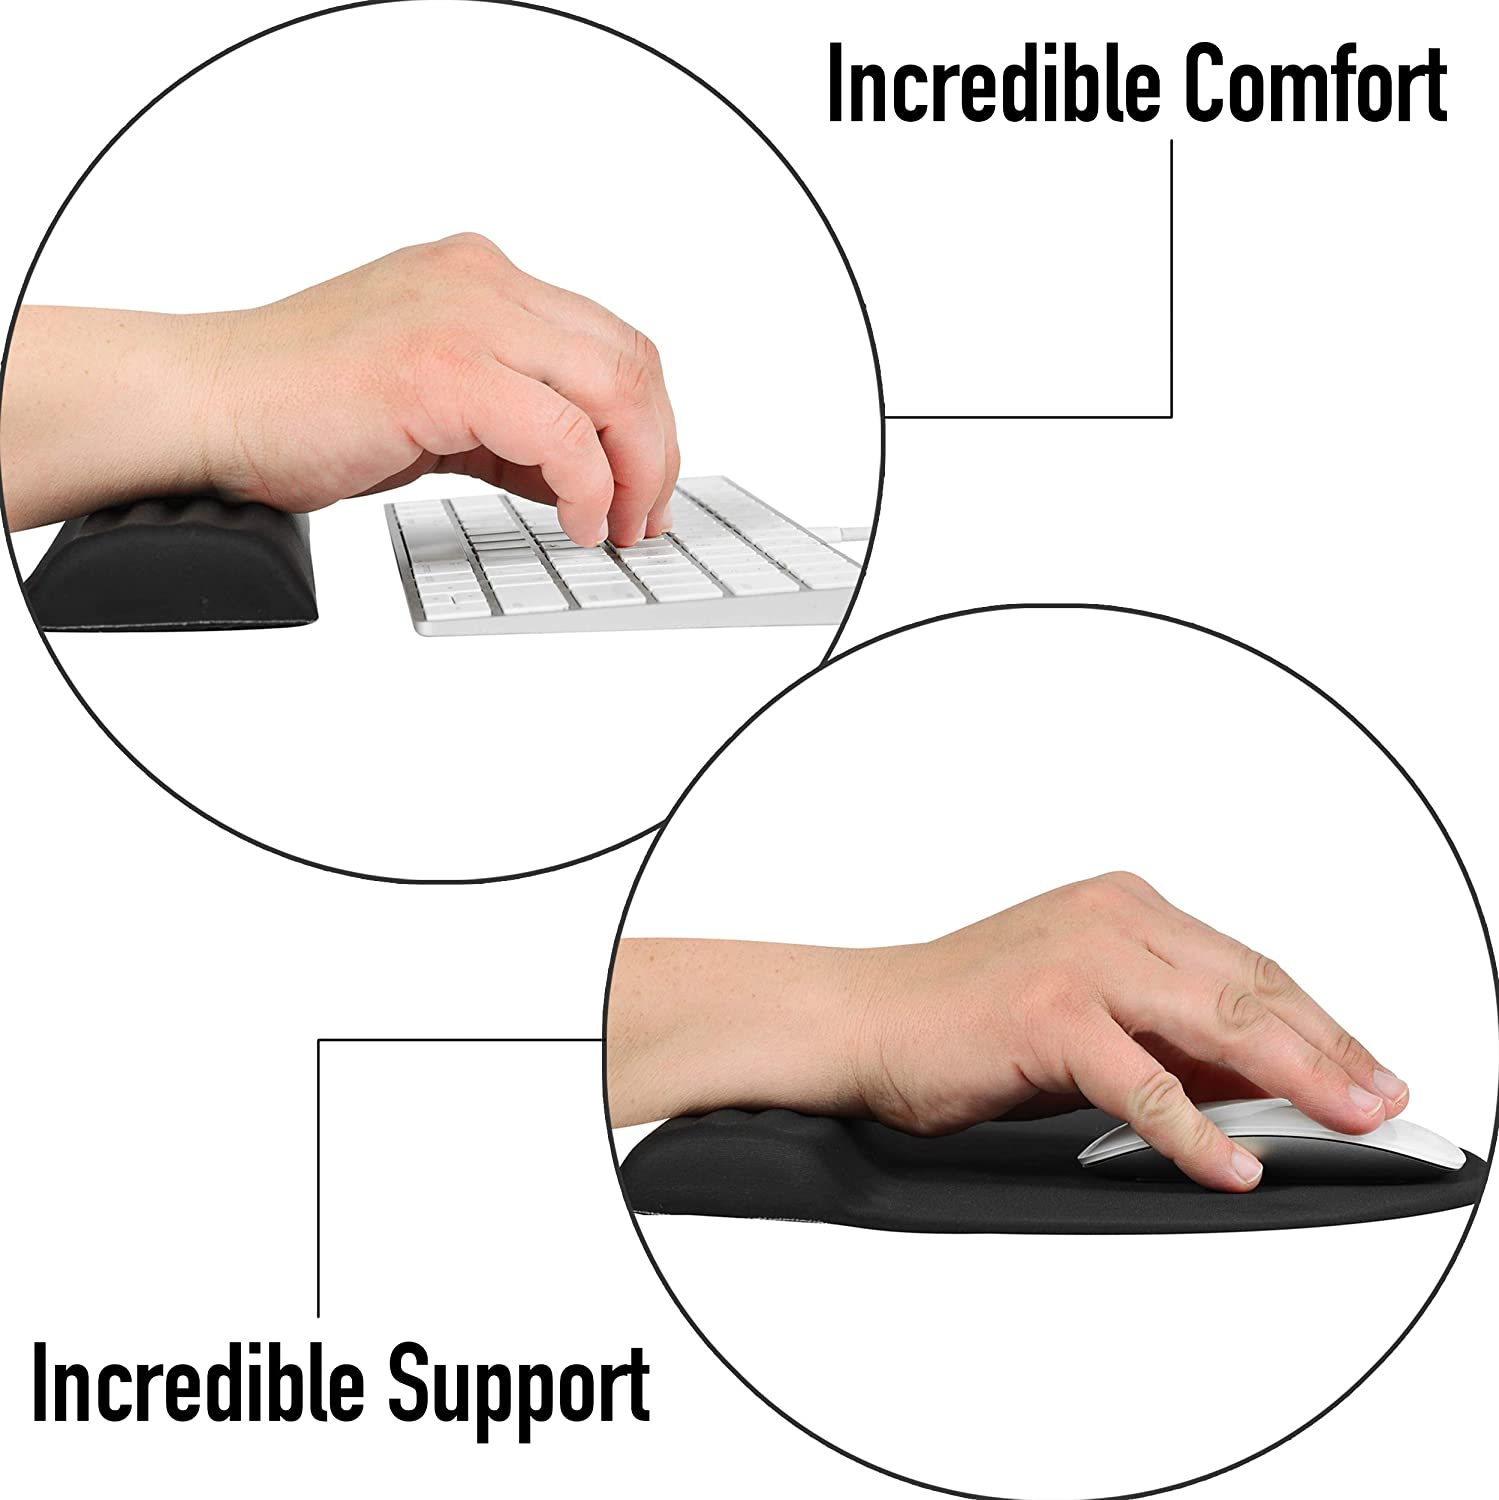 Memory Foam Padding for Comfortable and Durable Ergonomic Support Keyboard Wrist Rest and Mouse Pad Combo Set Pain Relief for Typing and Gaming on Laptop Computer PC and Mac Nonslip Rubber Base